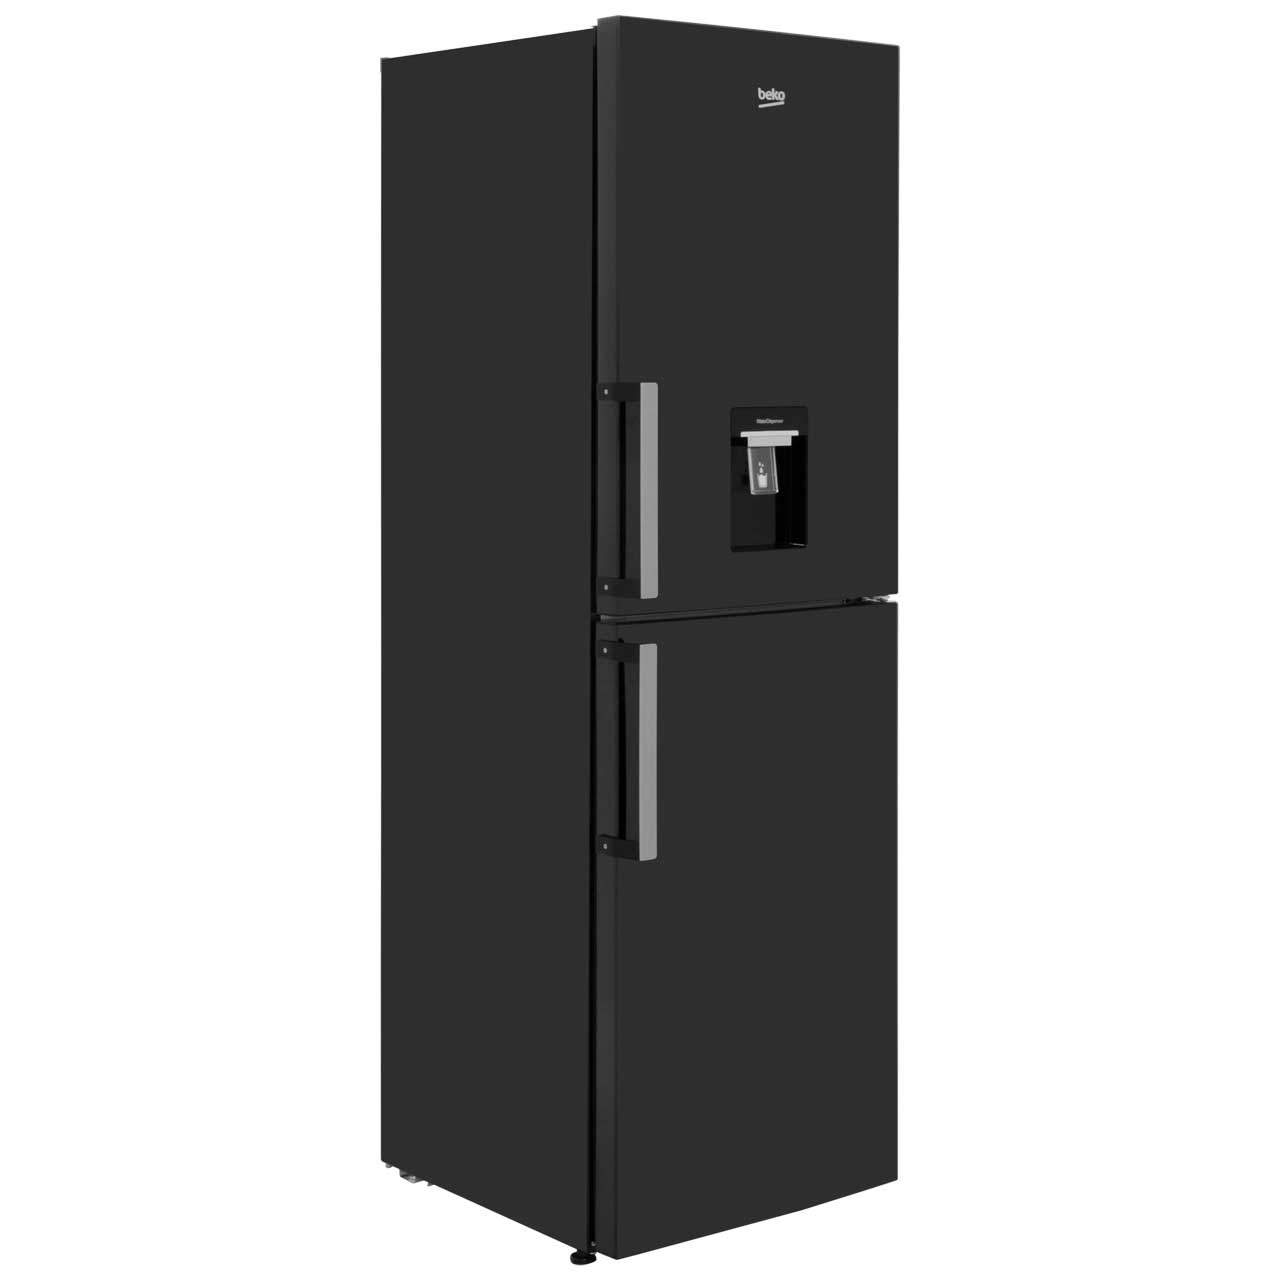 Beko CFP1691DB Free Standing Fridge Freezer Frost Free in Black